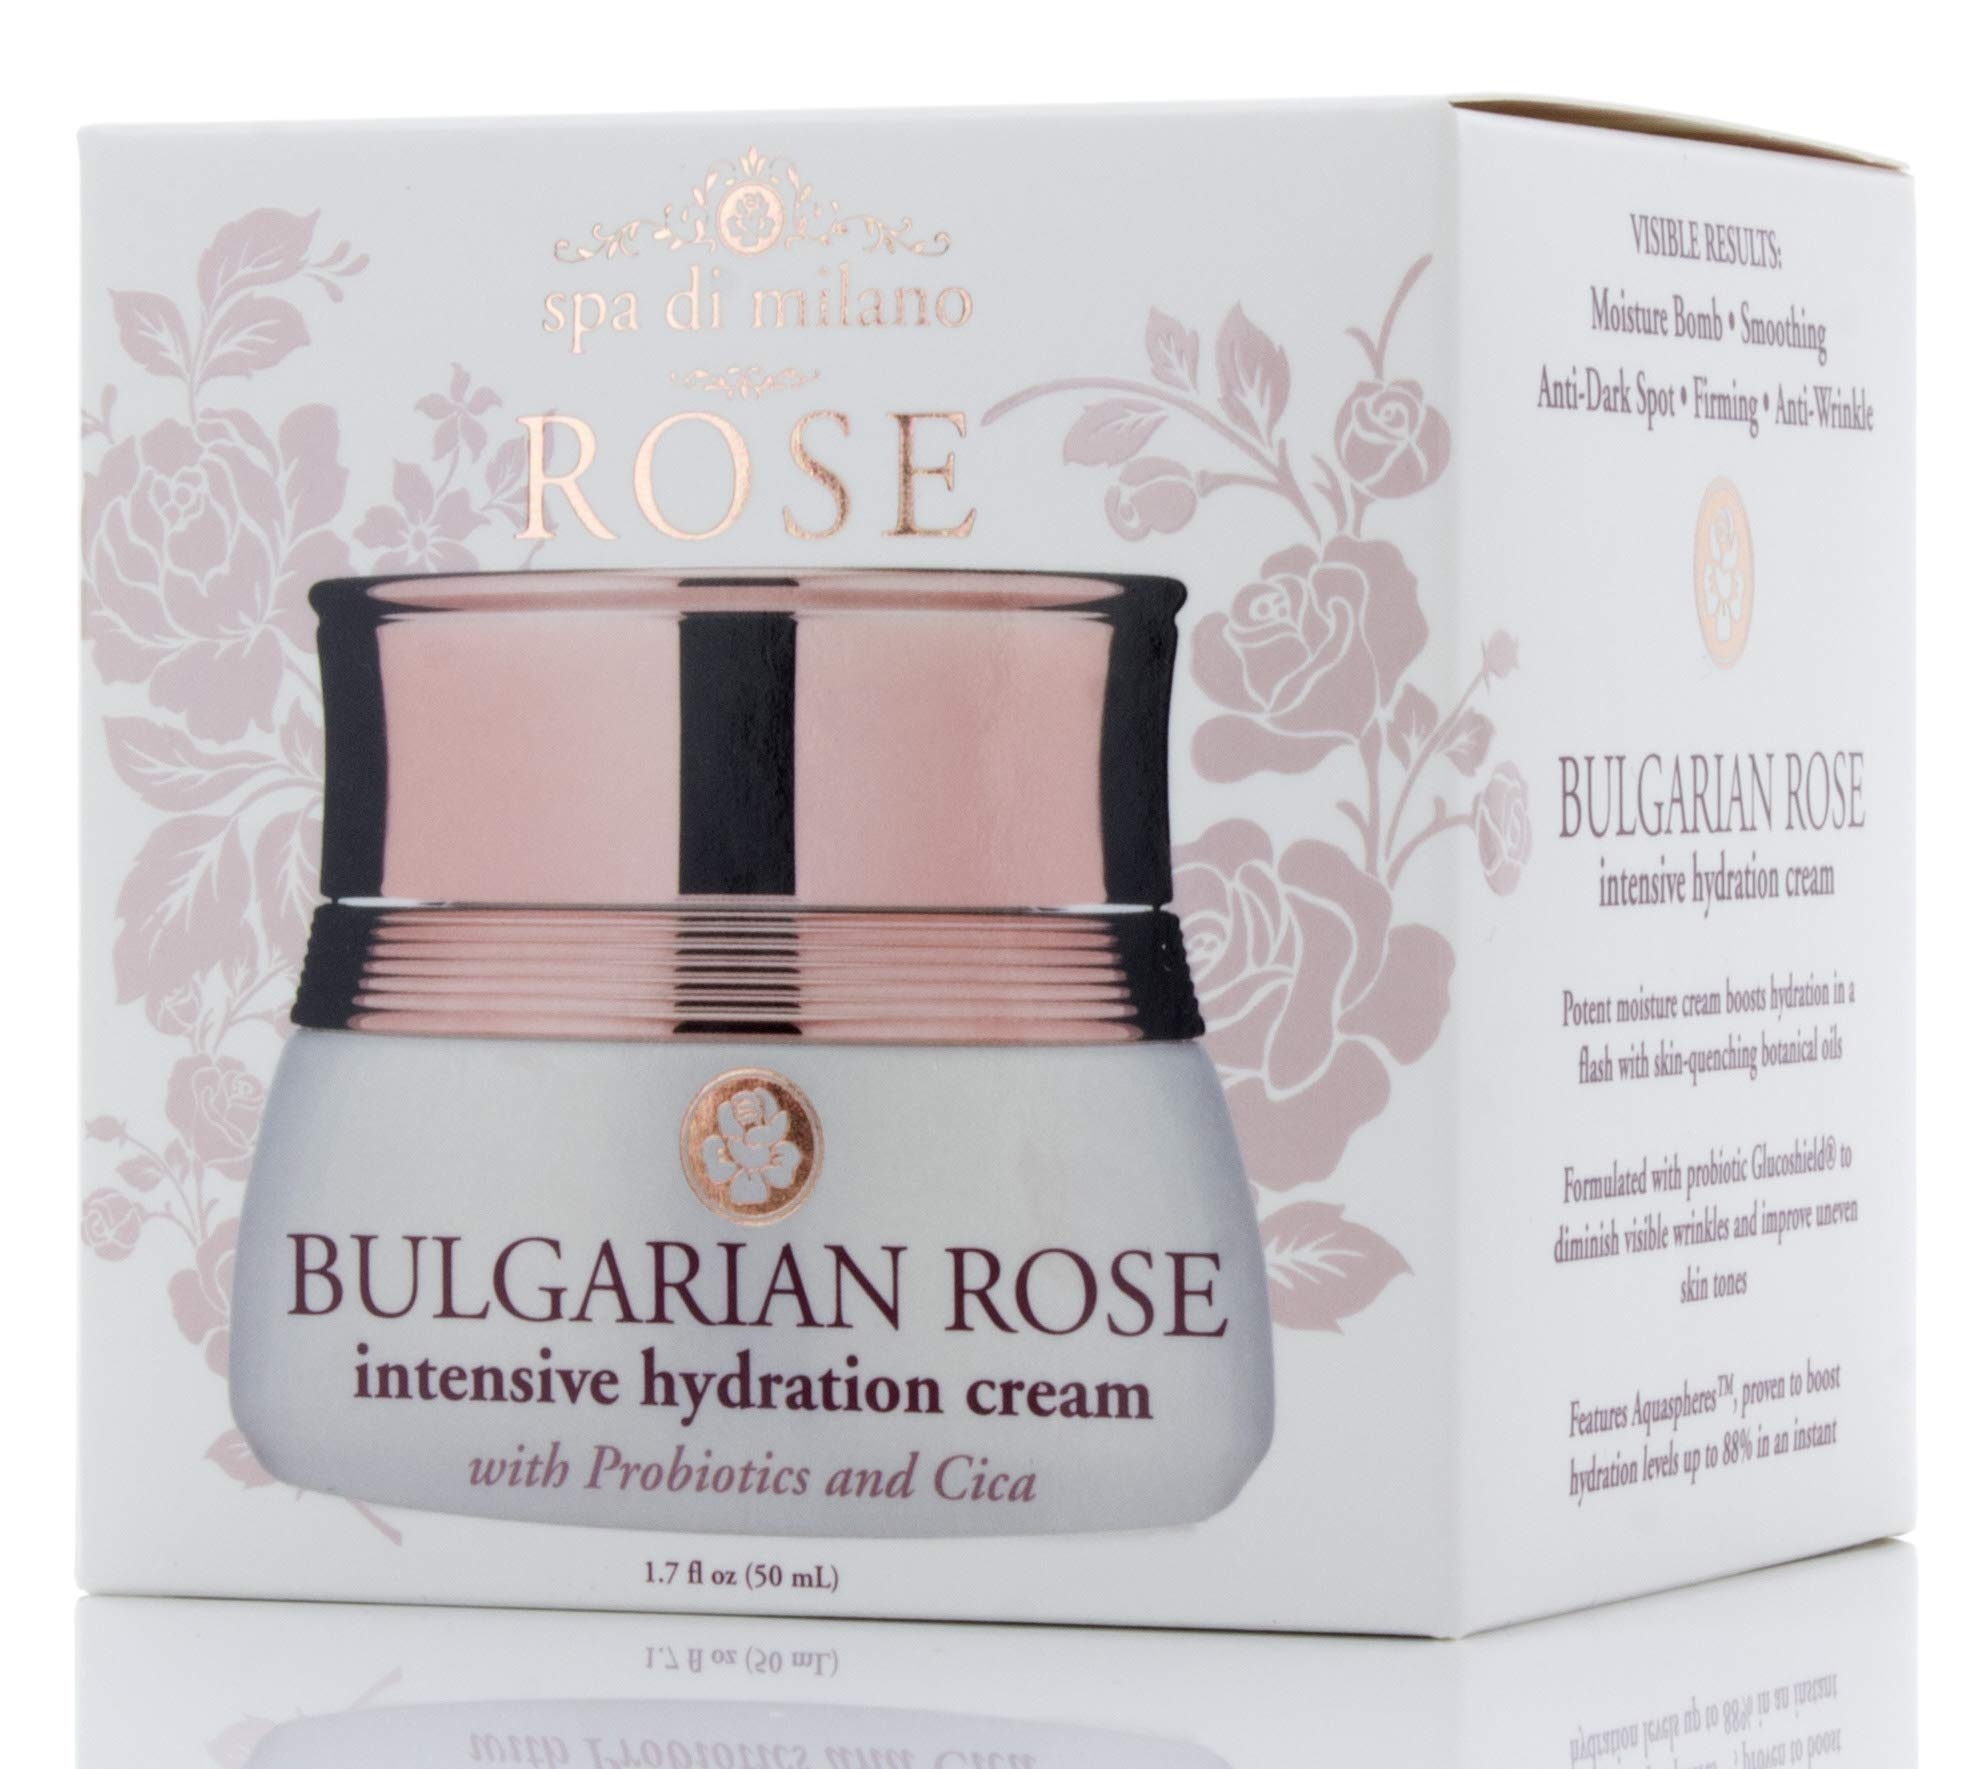 1.7 fl oz Bulgarian Rose Intensive Hydrating Face Cream with Vitamin C, Hyaluronic Acid, Probiotics and Cica. Anti-aging cream for Wrinkles, Dark Spots, Uneven Skin Tone, Dry Skin.